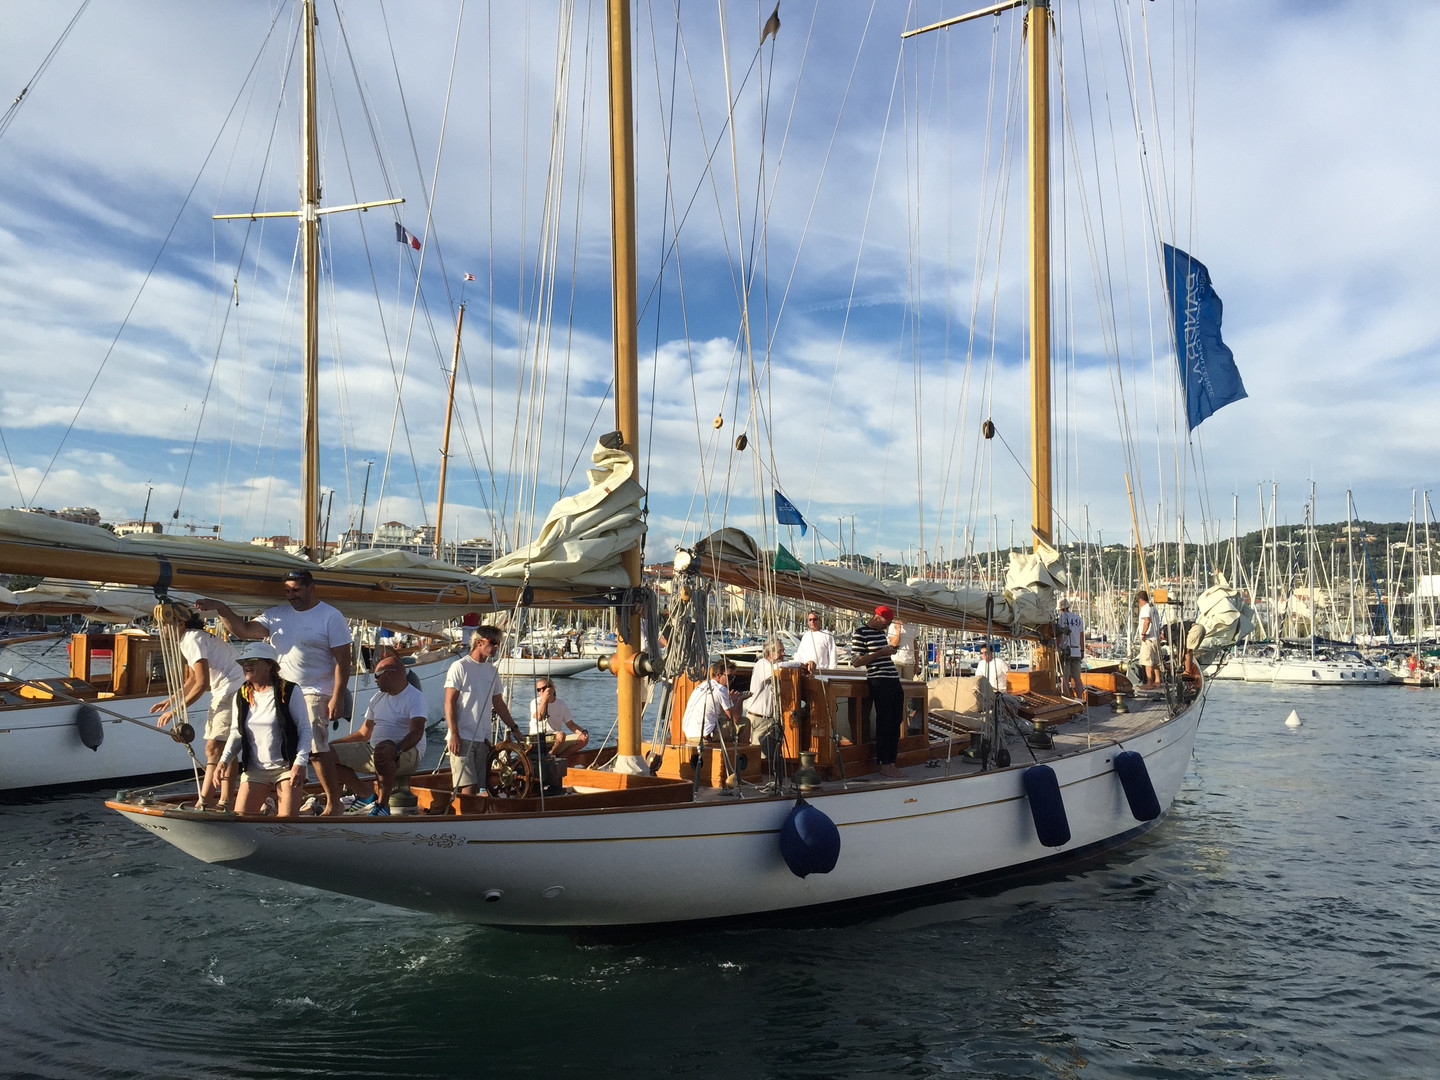 Racing in Le Regates Royales. Cannes, France.